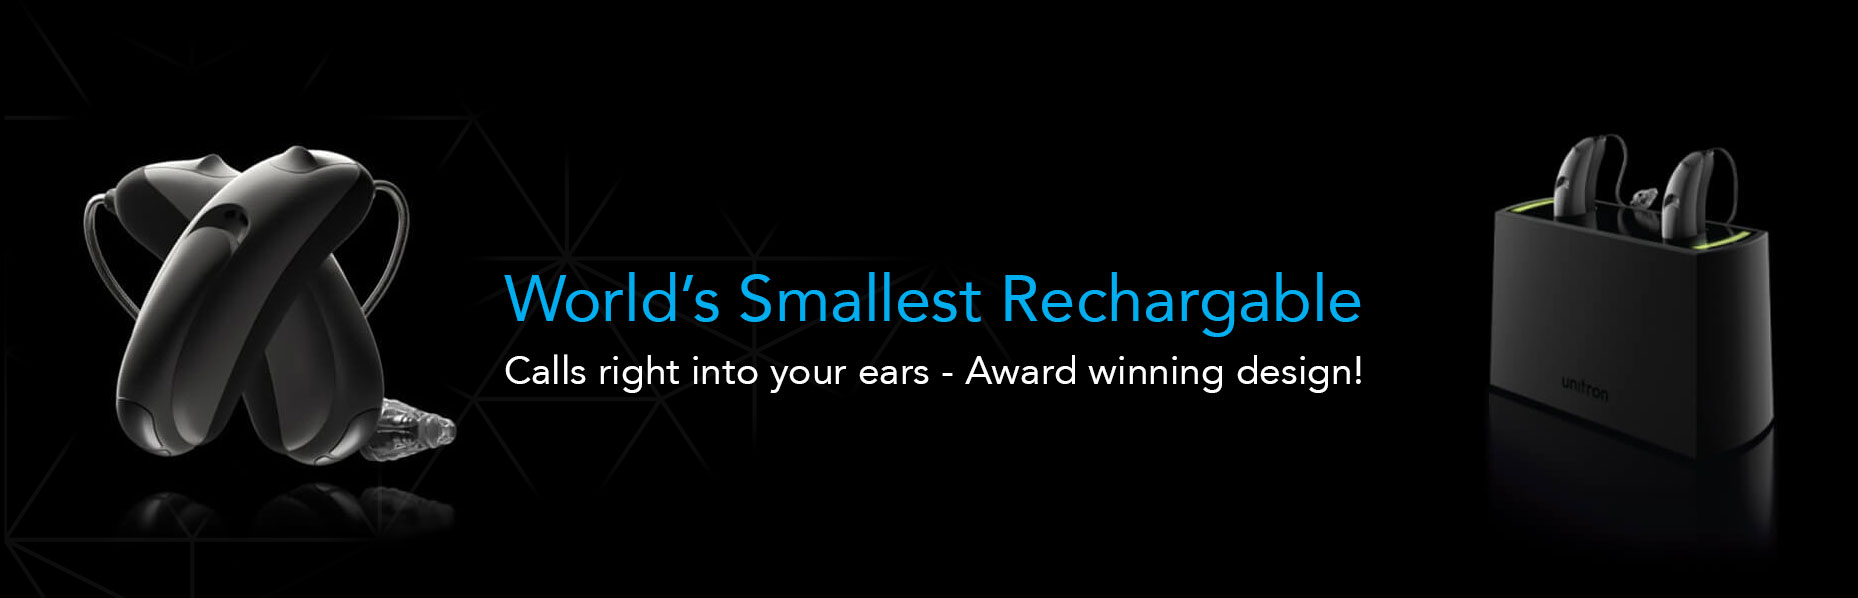 An enlarged image of a pair of the Unitron Moxi All R hearing aid stands upright on the left and another pair of the device on the charging base sits on the right side of a black surface with a text in the middle that says World's Smallest Rechargeable Call right into your ears - Award winning design!